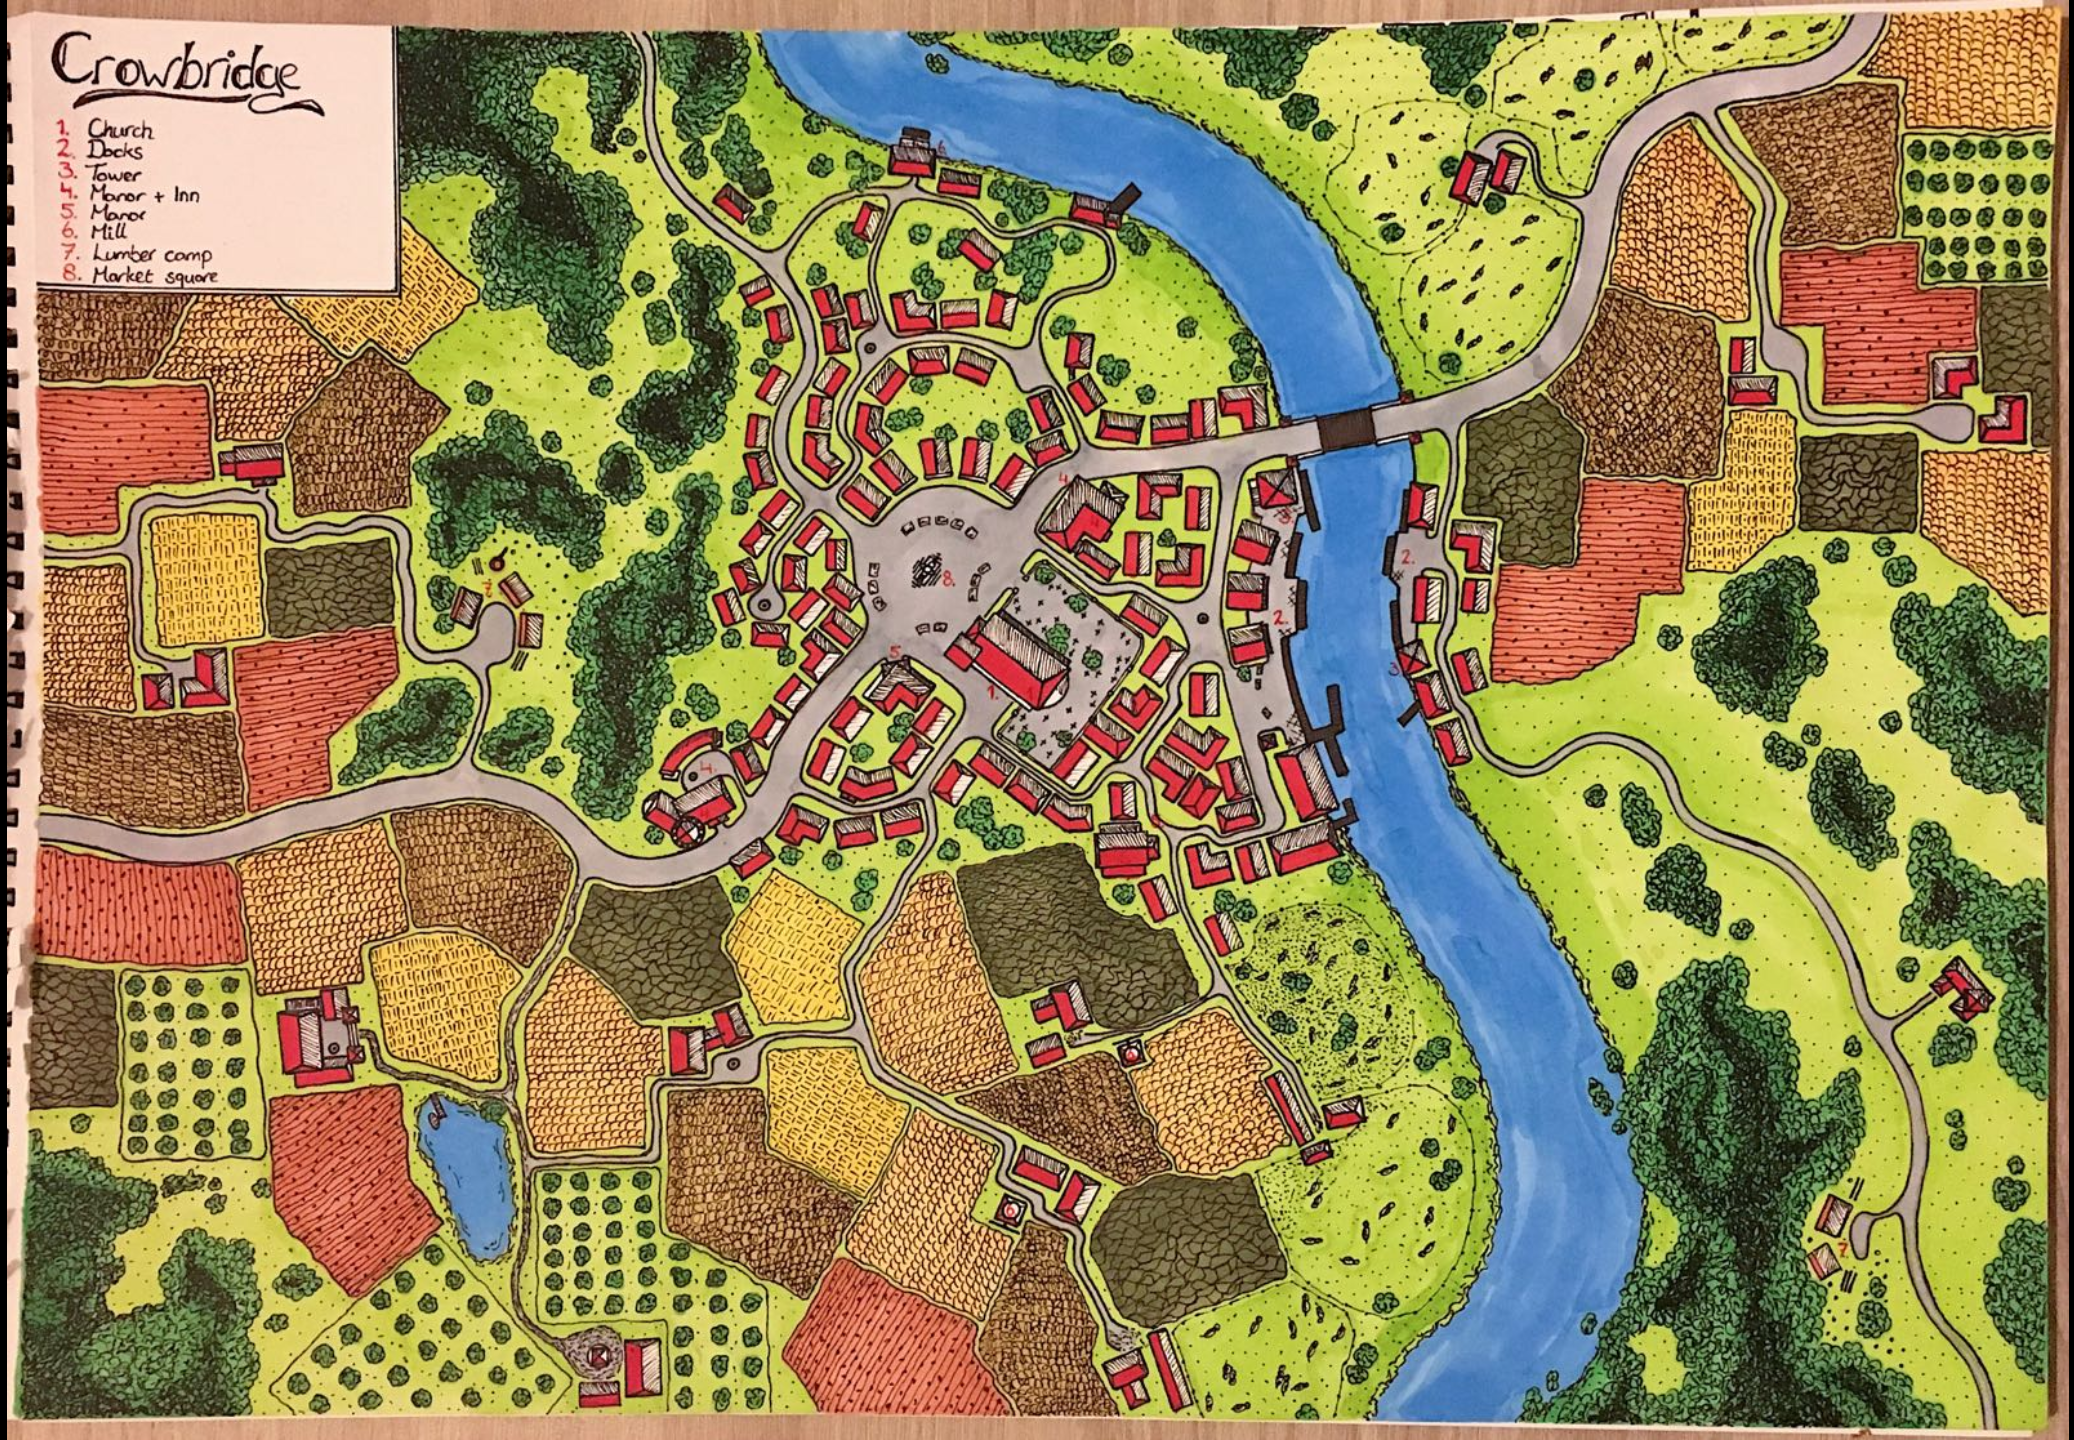 Coloured my map ireddit submitted by Velnerius